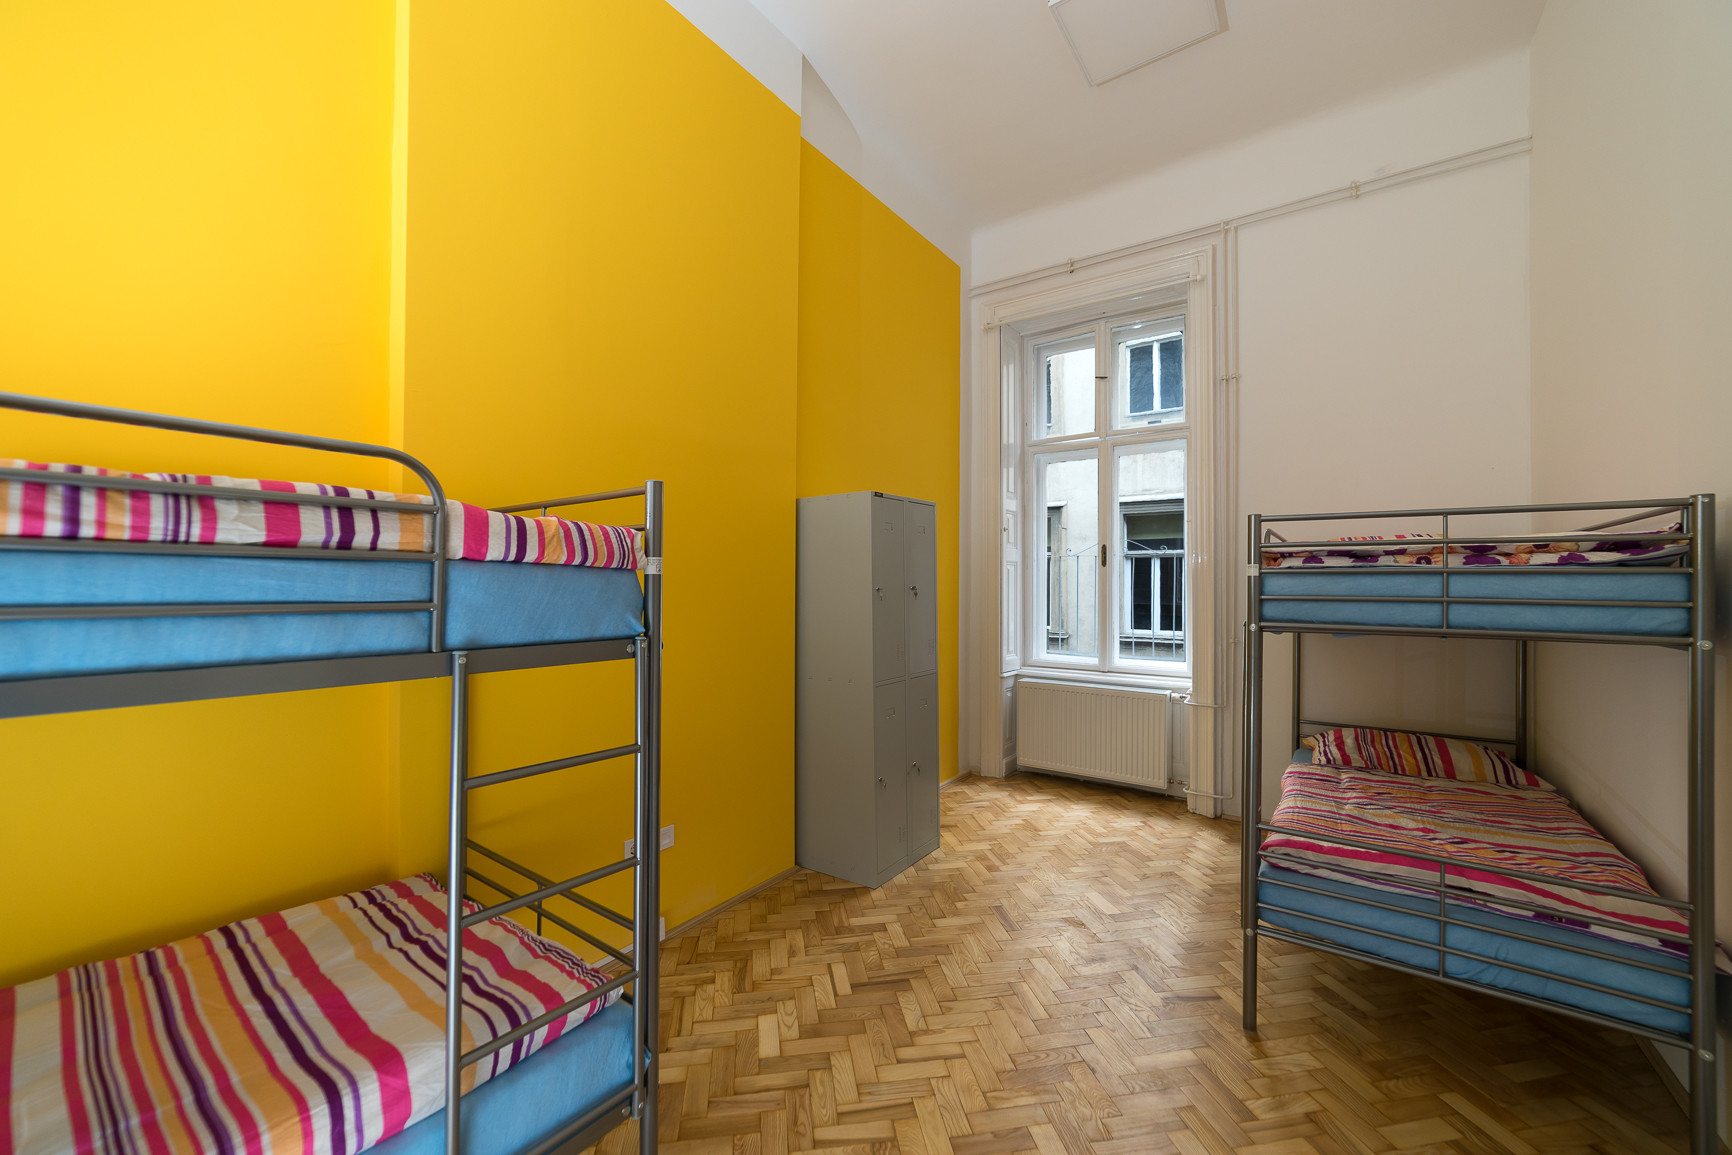 10 Discount Until The 15th Of February 2021 Bed In 4 People Shared Room For Students Only Females Budapest City Center Room For Rent Budapest